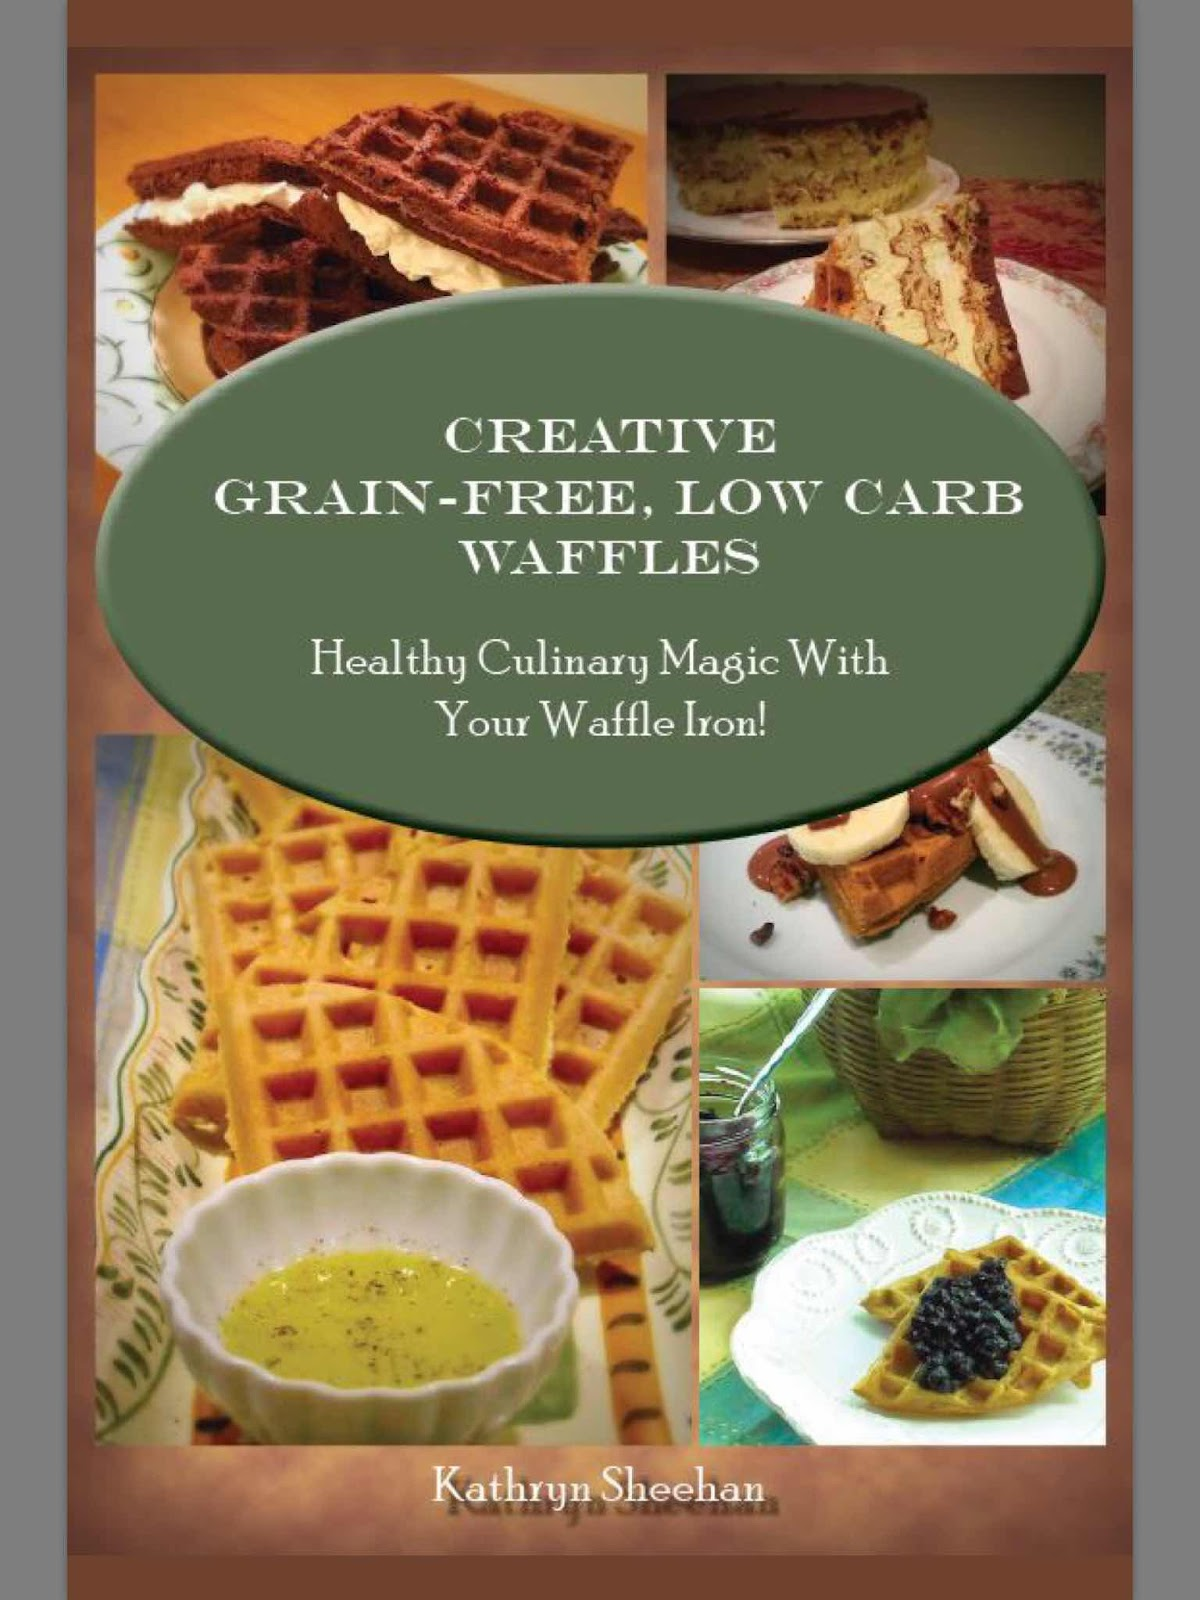 Creative Grain-Free, Low Carb Waffles